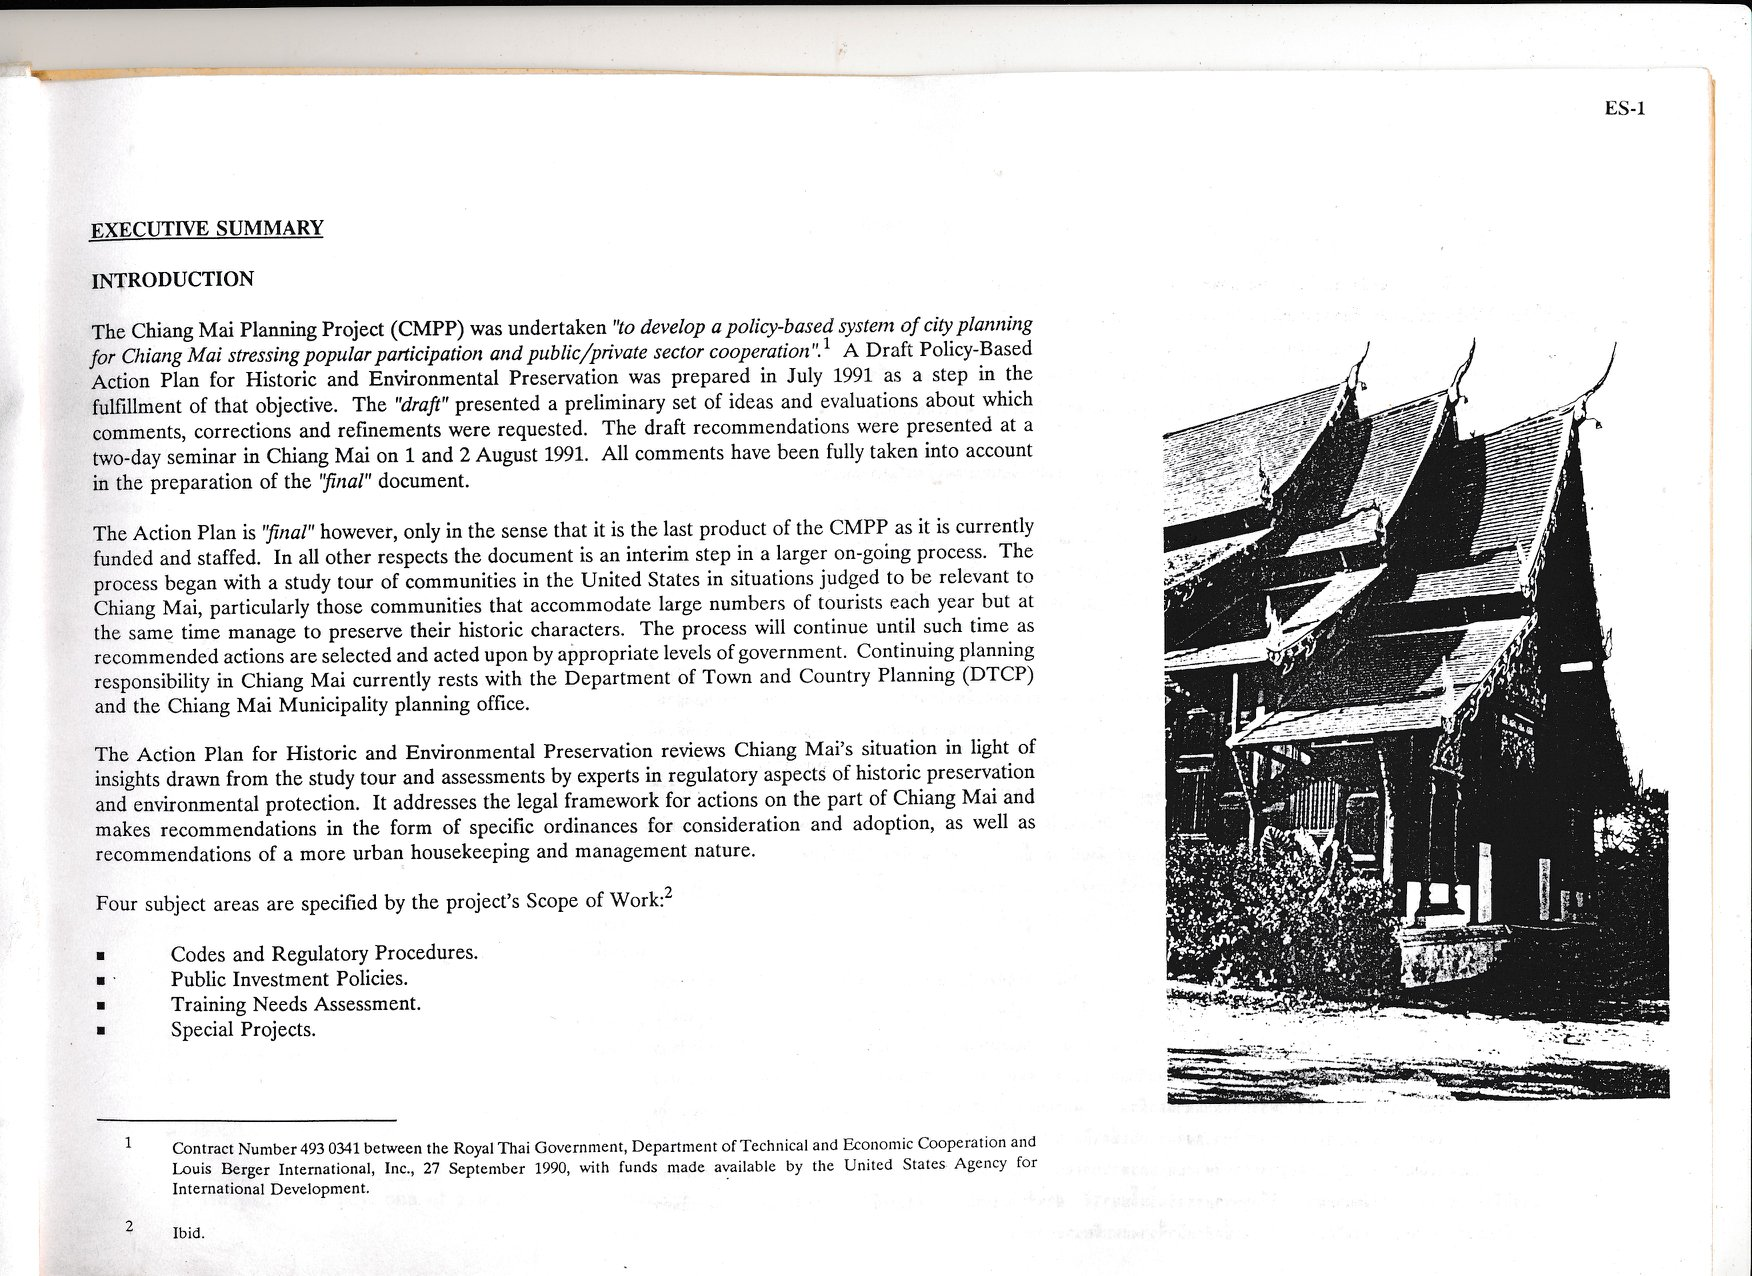 Page 1 of the Chiang Mai Policy-Based Action Plan for historic and environmental preservation